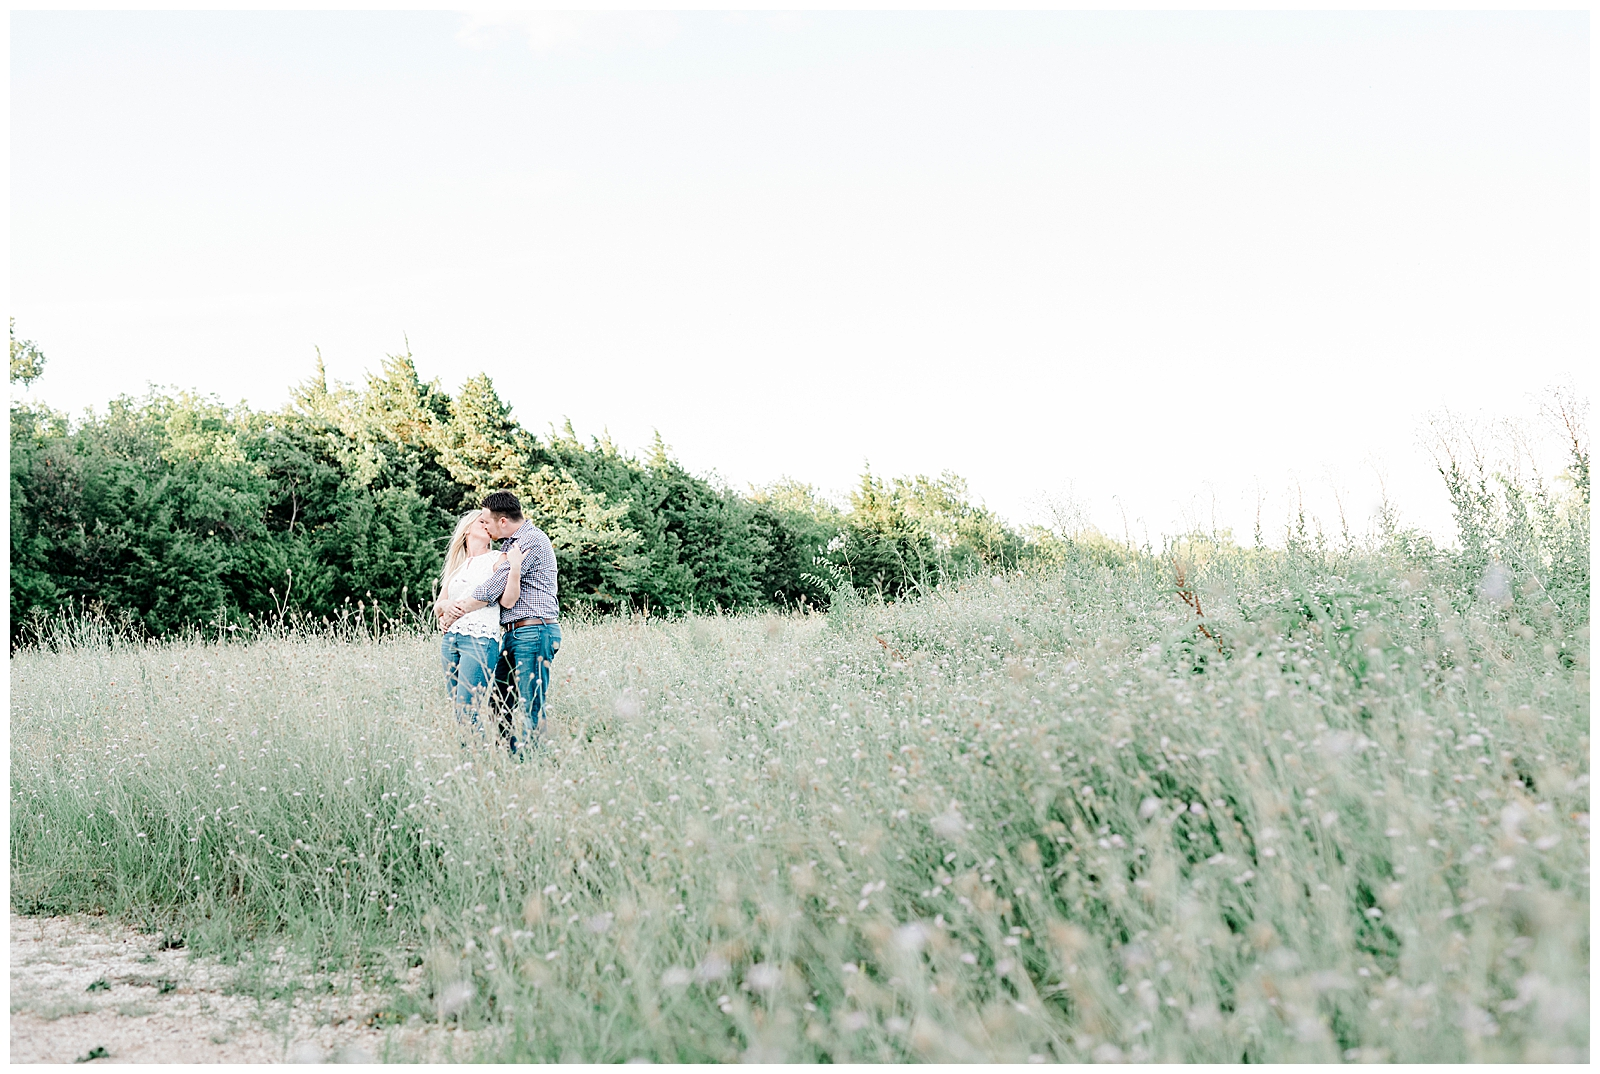 Jessica & Ryan's Engagement Session at Arbor Hills Nature Preserve with Rachel Driskell Photography